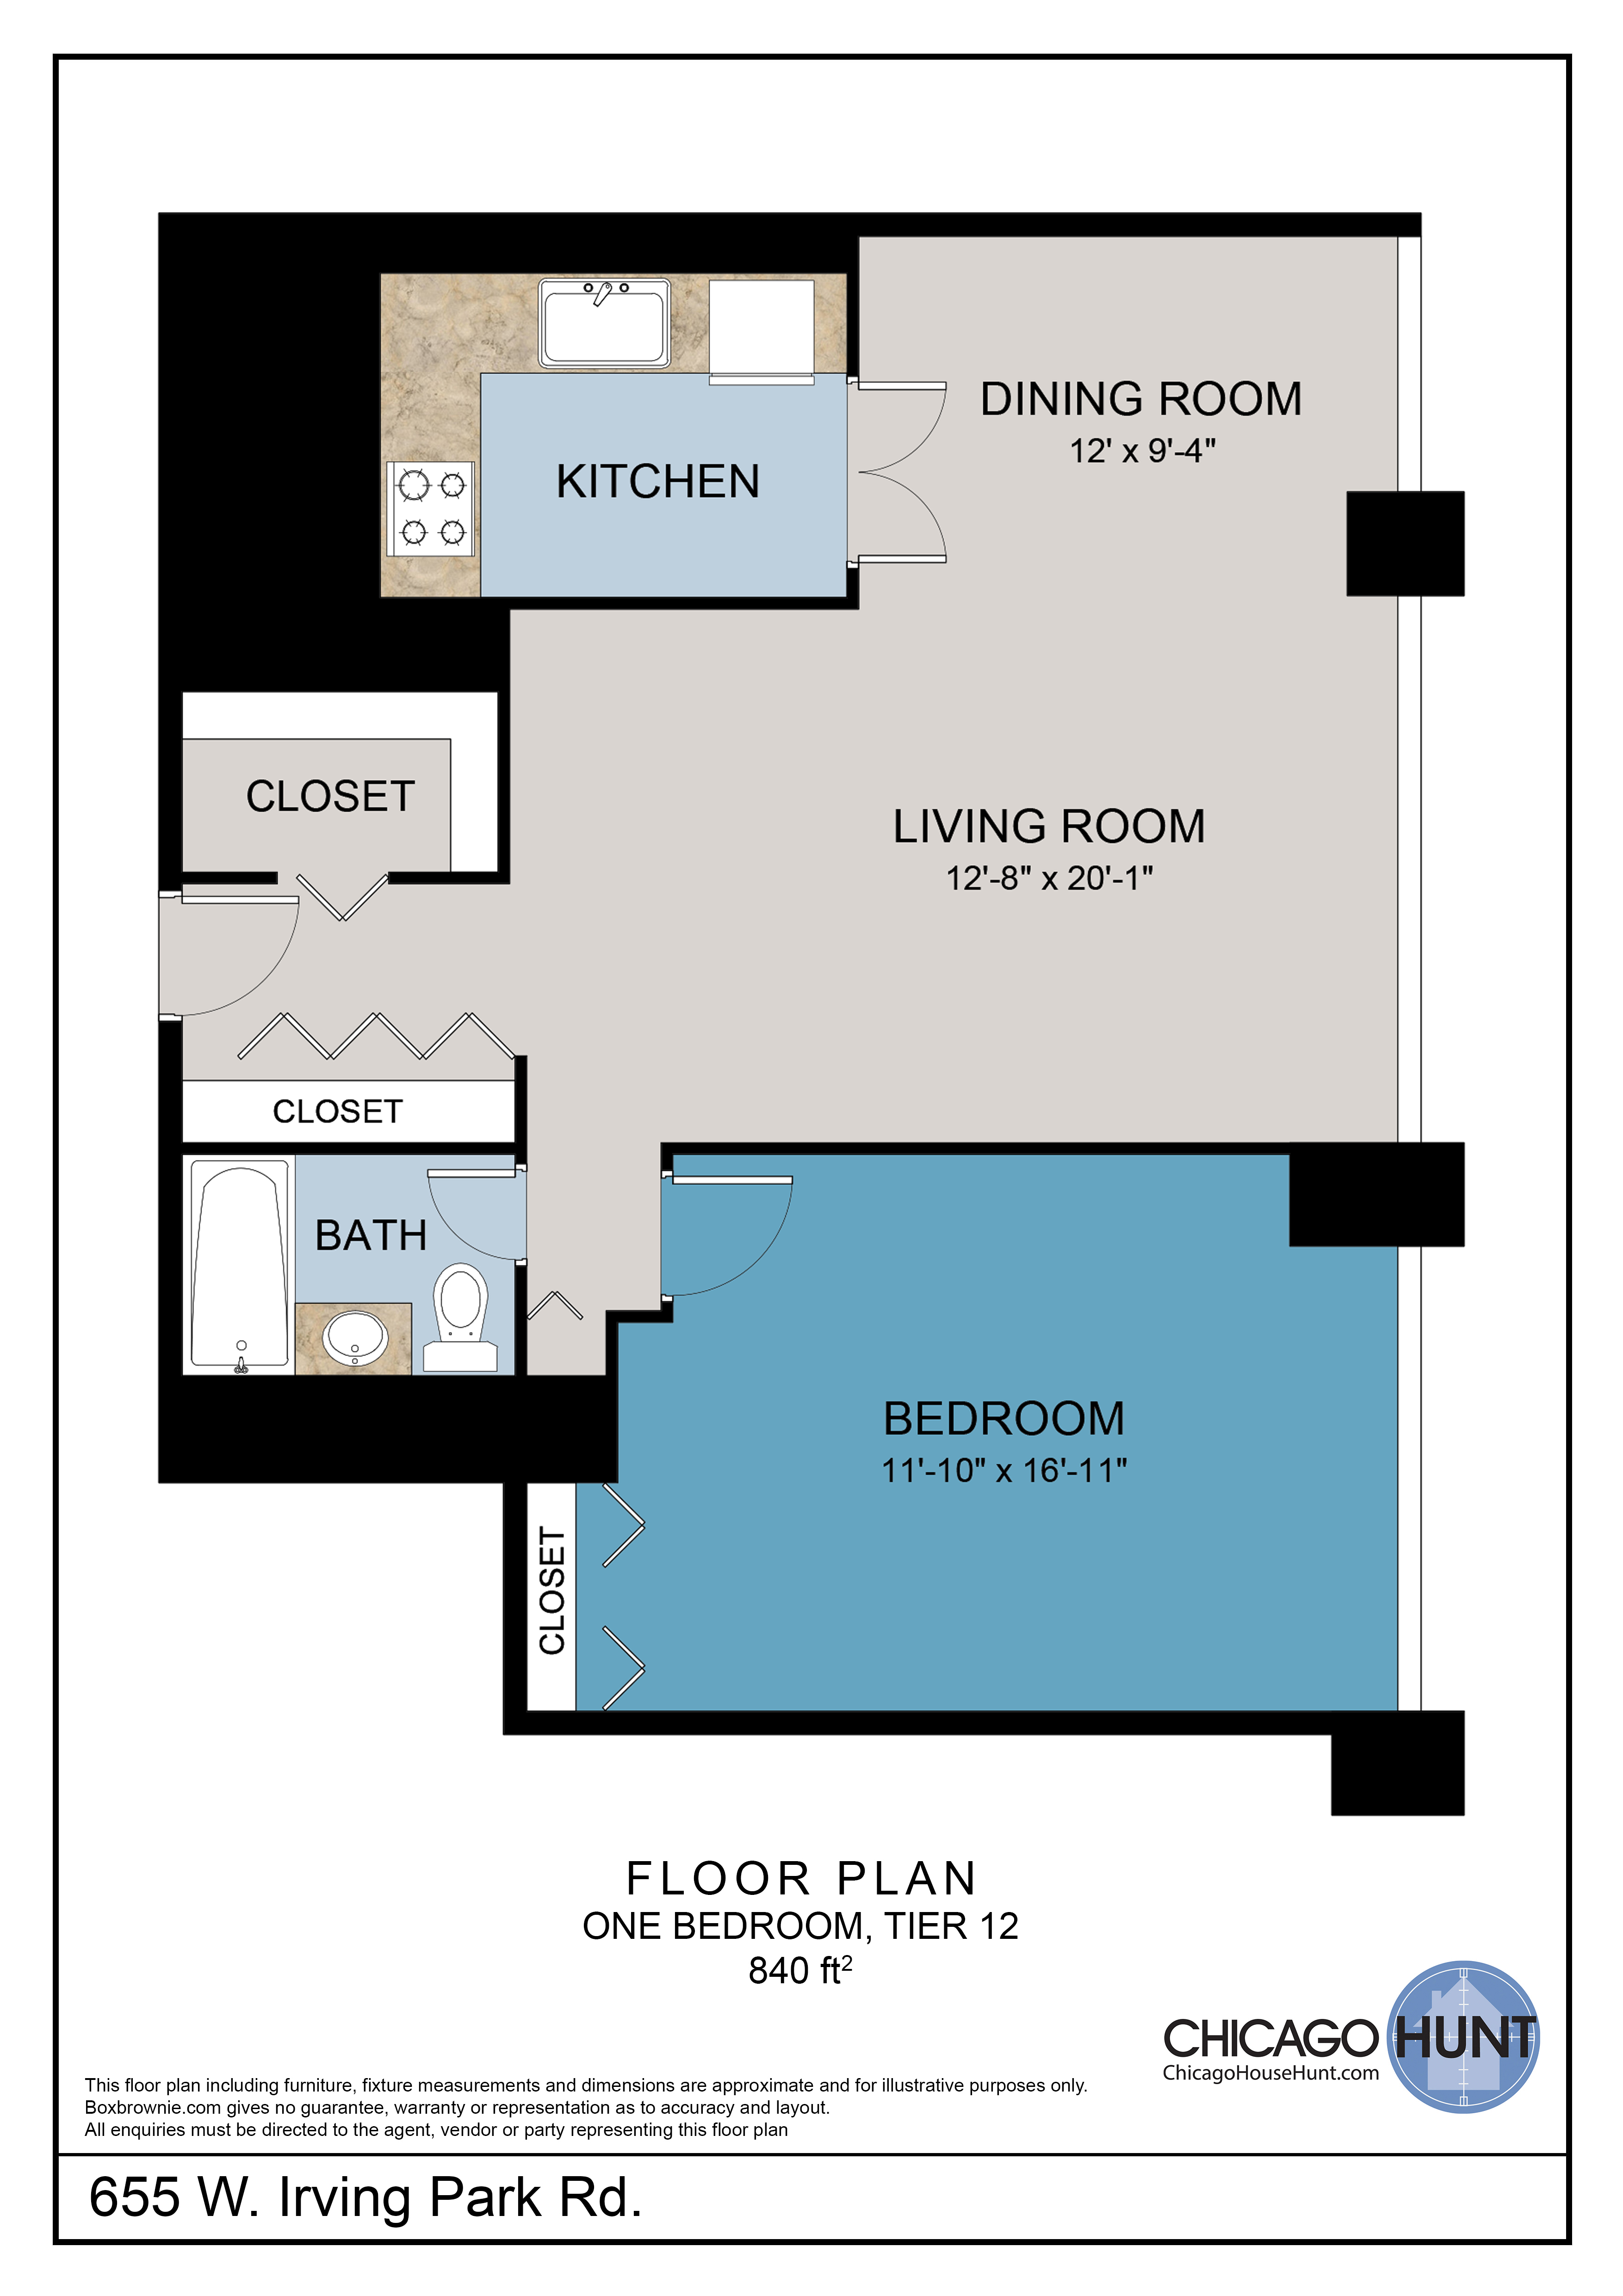 655 Irving Park, Park Place Towere - Floor Plan - Tier 12